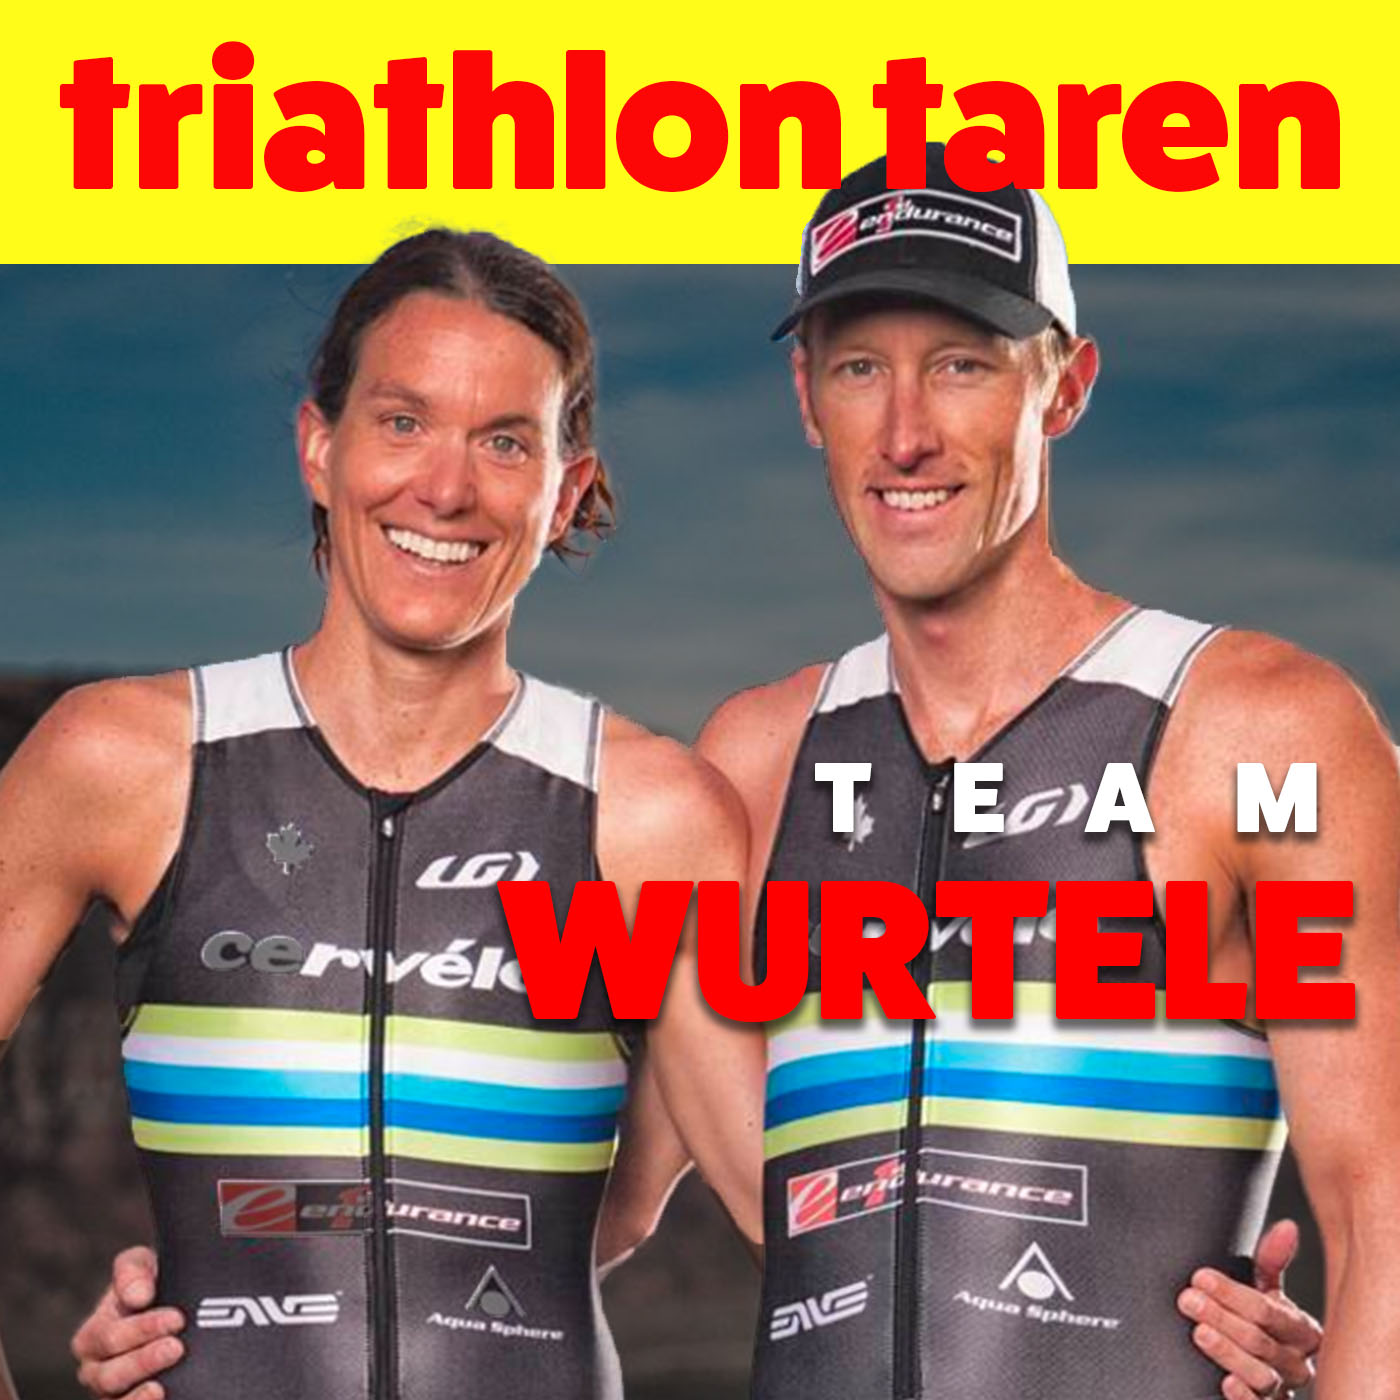 Heather & Trevor Wurtele on Not Racing Ironman Kona, Doping in Triathlon, and Leaving Safe Careers Ep.090